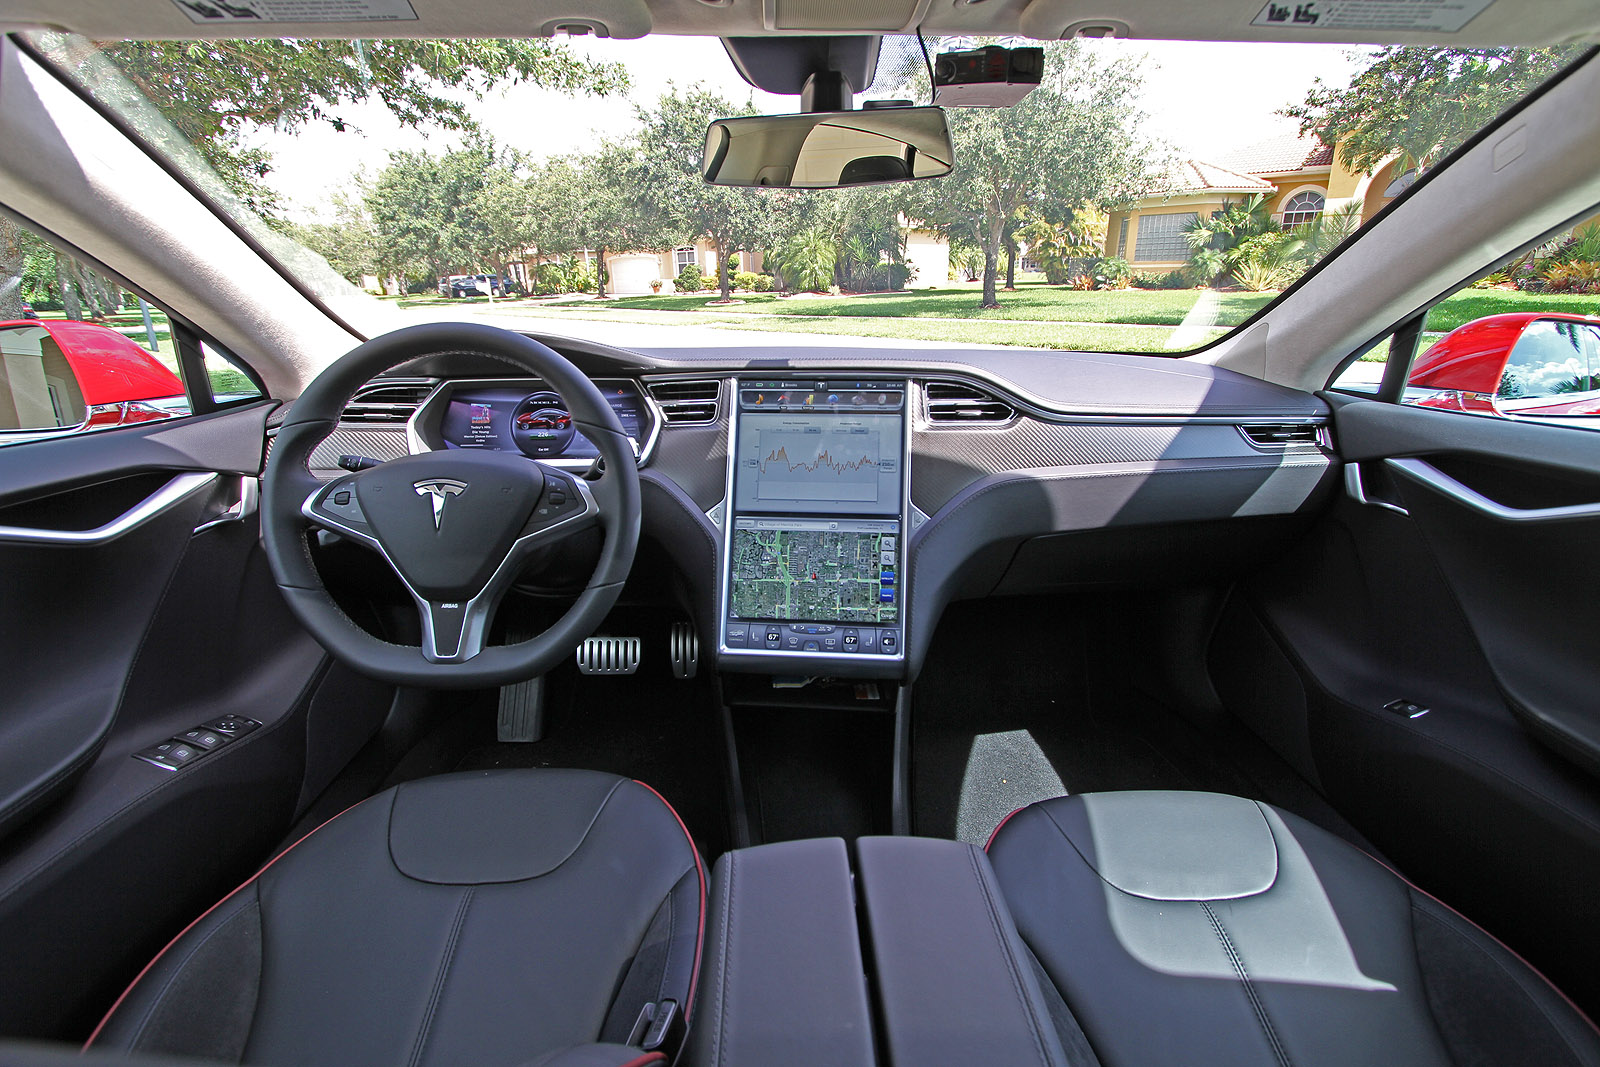 2013-tesla-model-s-p85-multi-coat-red-017.jpg